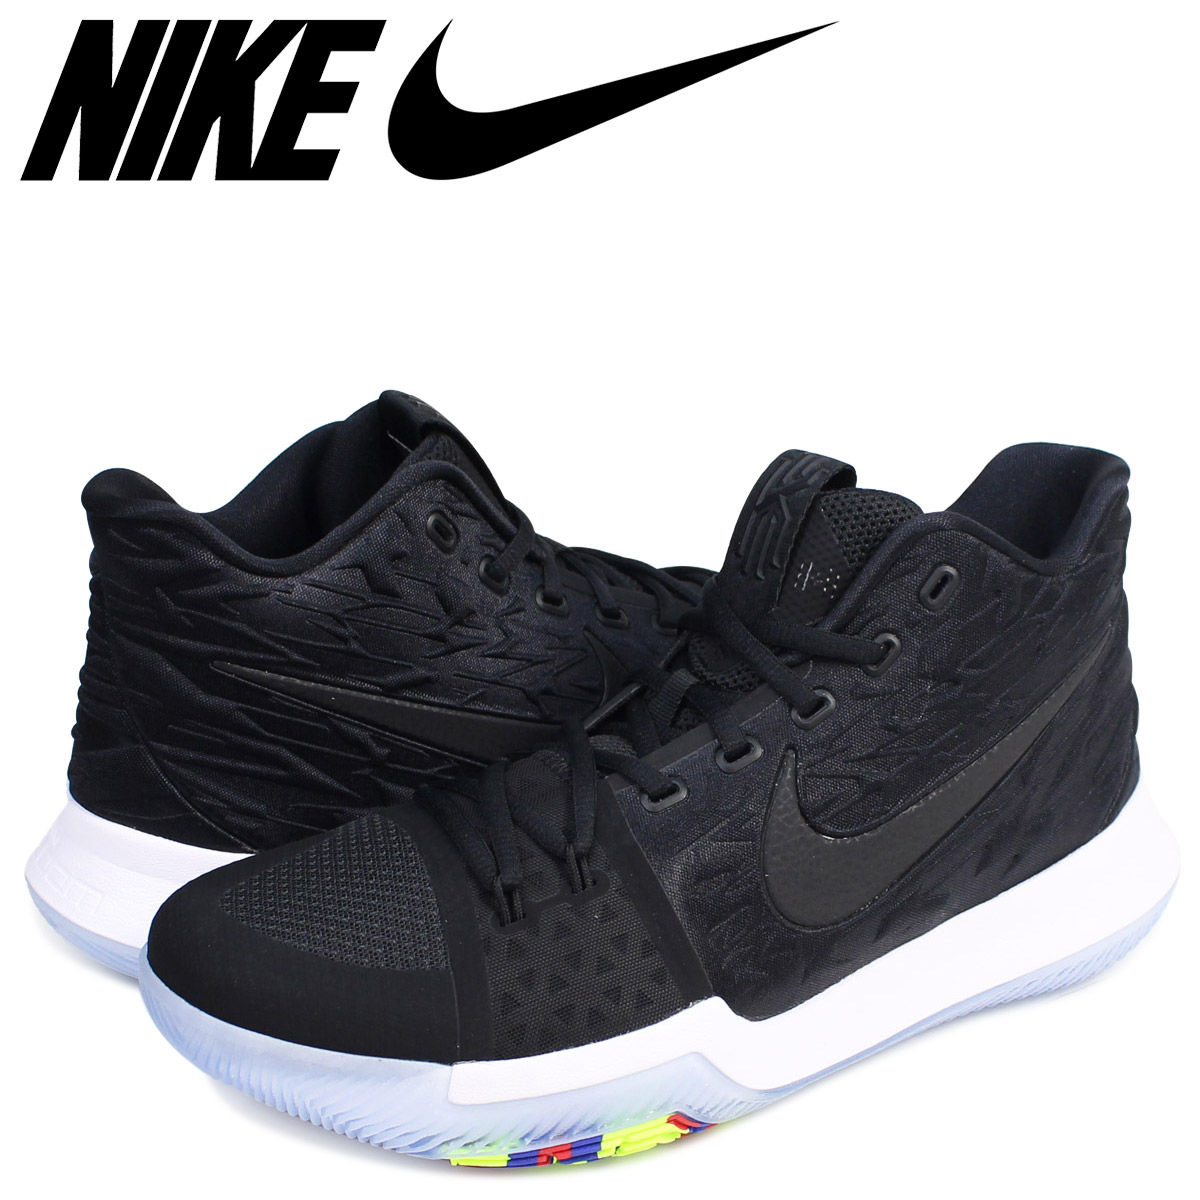 a920291632f ALLSPORTS  NIKE Nike chi Lee 3 sneakers NIKE KYRIE 3 EP BLACK ICE ...